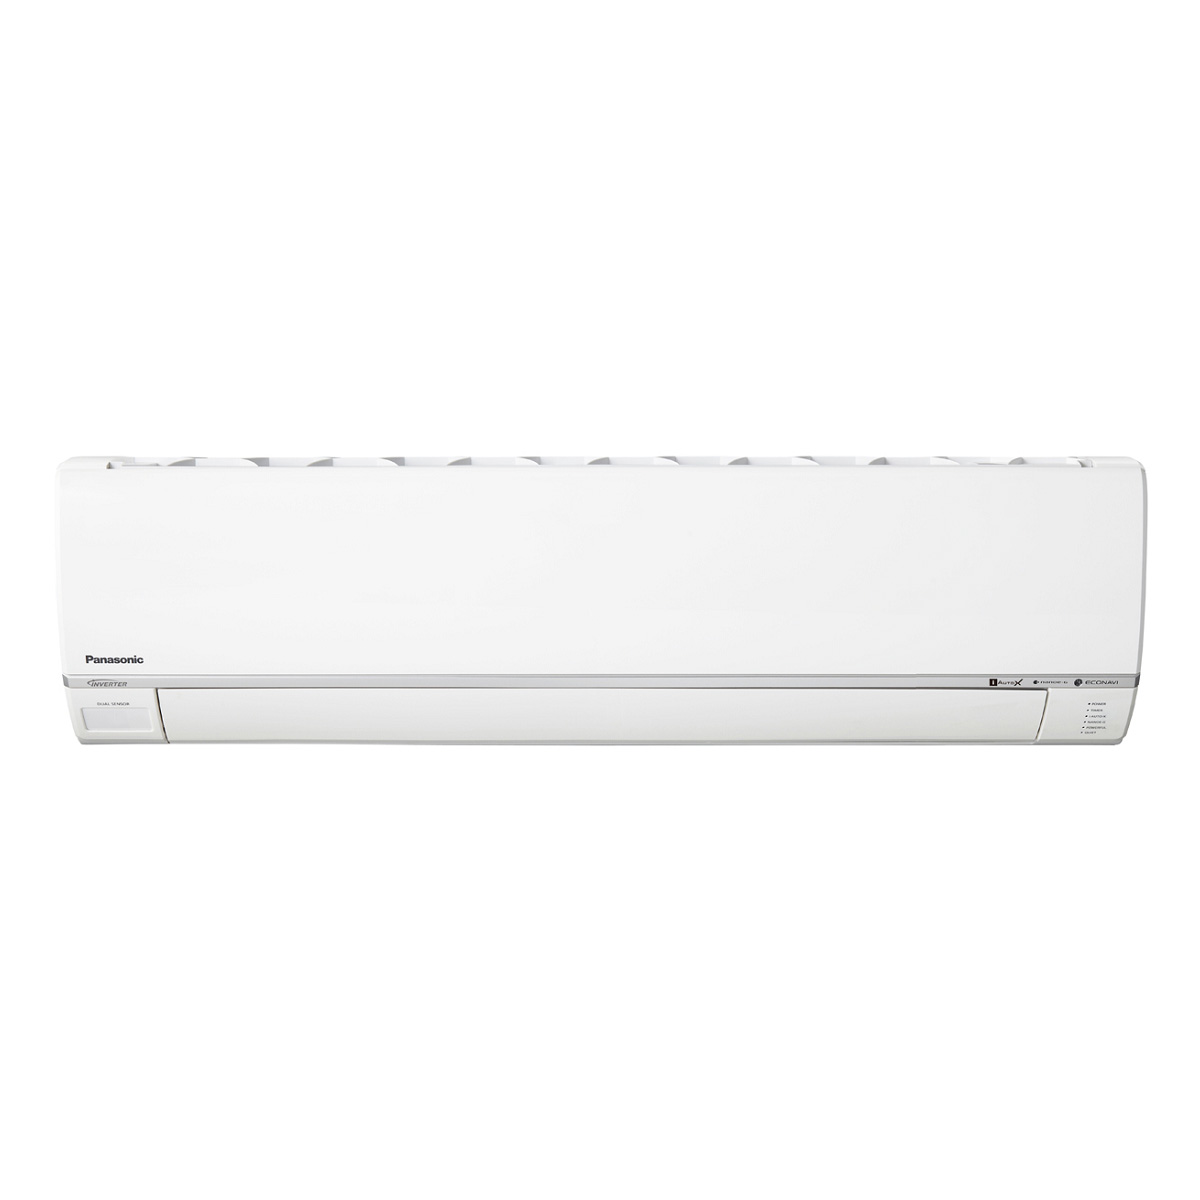 Panasonic CSCU-Z12RKR 3.5kW Reverse Cycle Inverter Air Conditioner